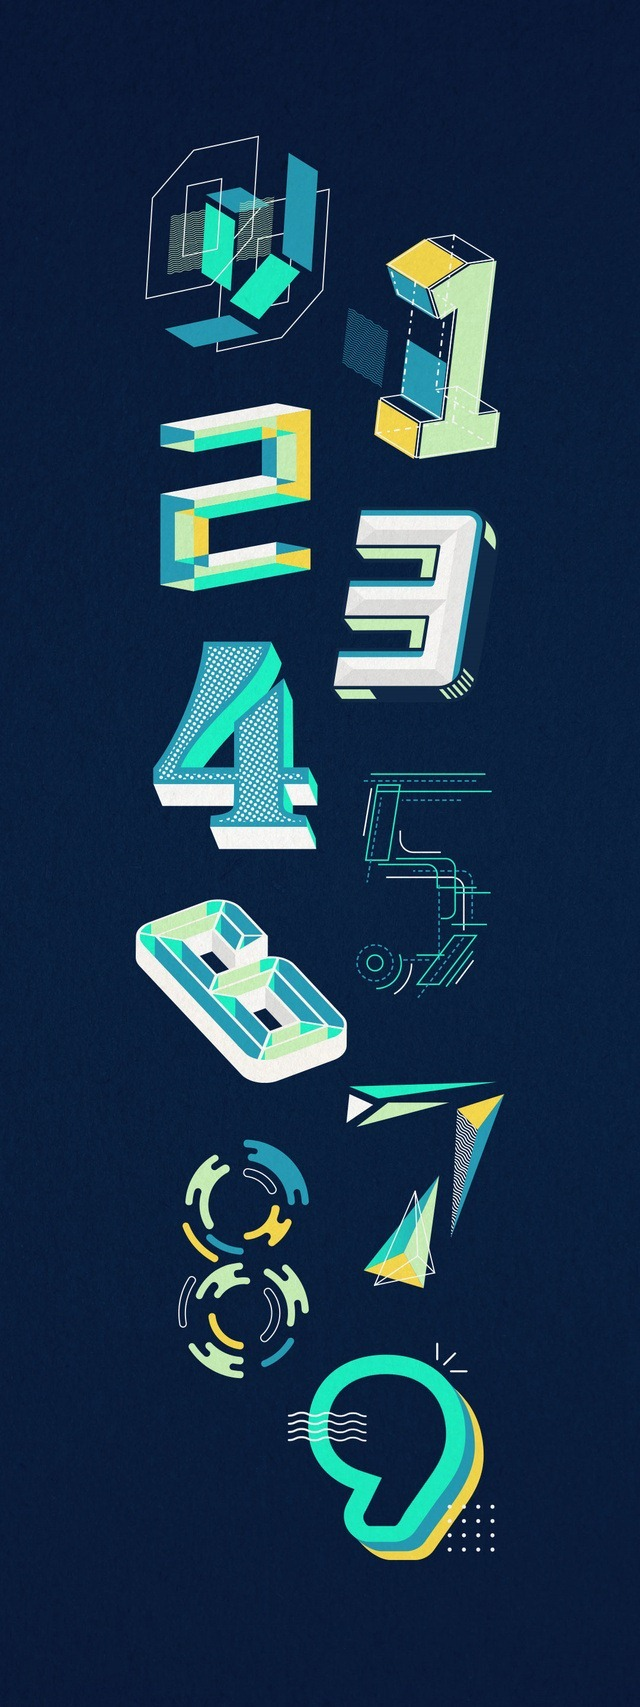 Numbers_all - Jesseca Dollano Graphic Design Created For 36 Days of Type Challenge